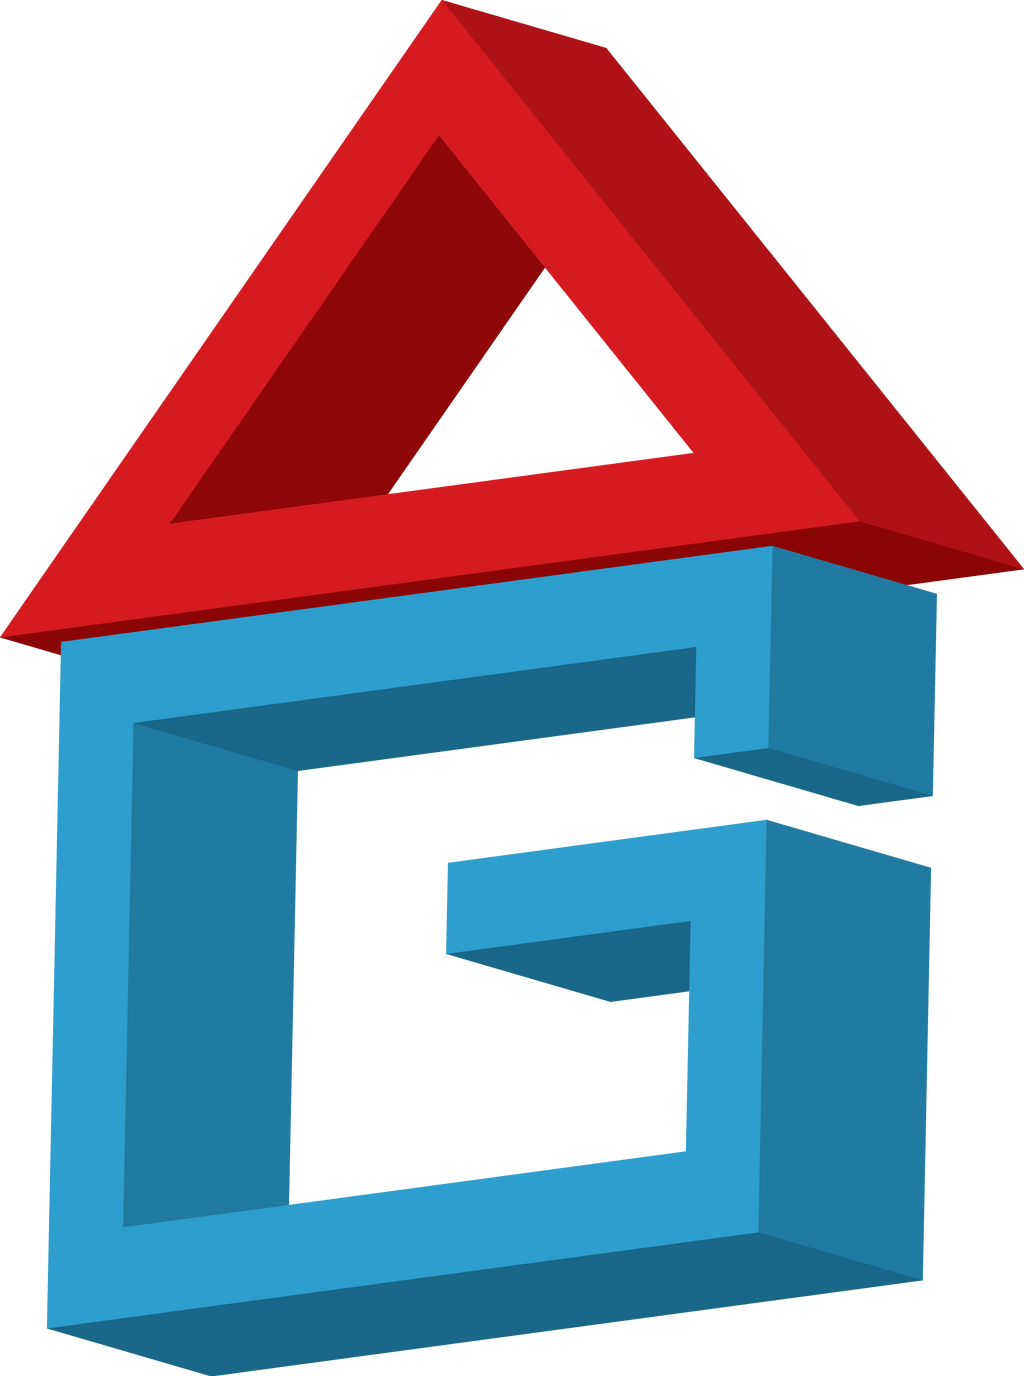 Gaming House Logo (Youtube Channel) by Xnak3 on DeviantArt